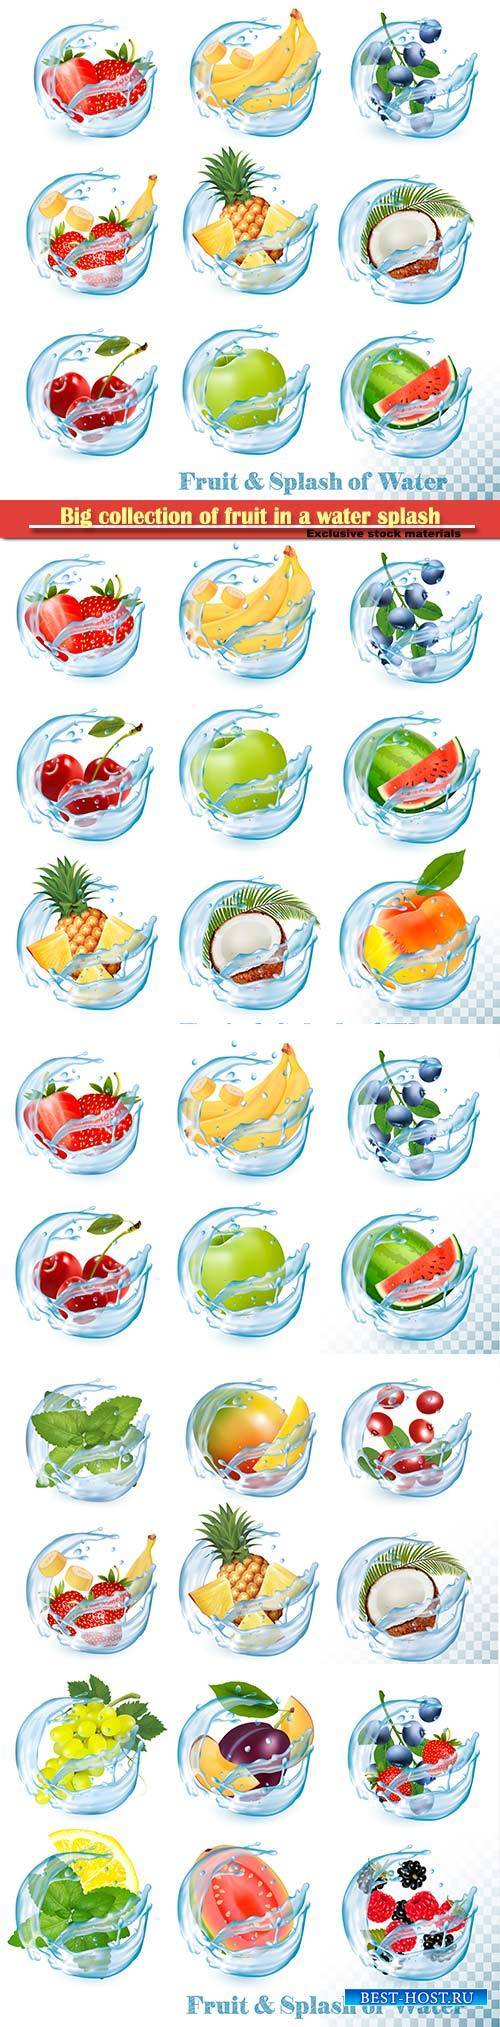 Big collection of fruit in a water splash icons vector set